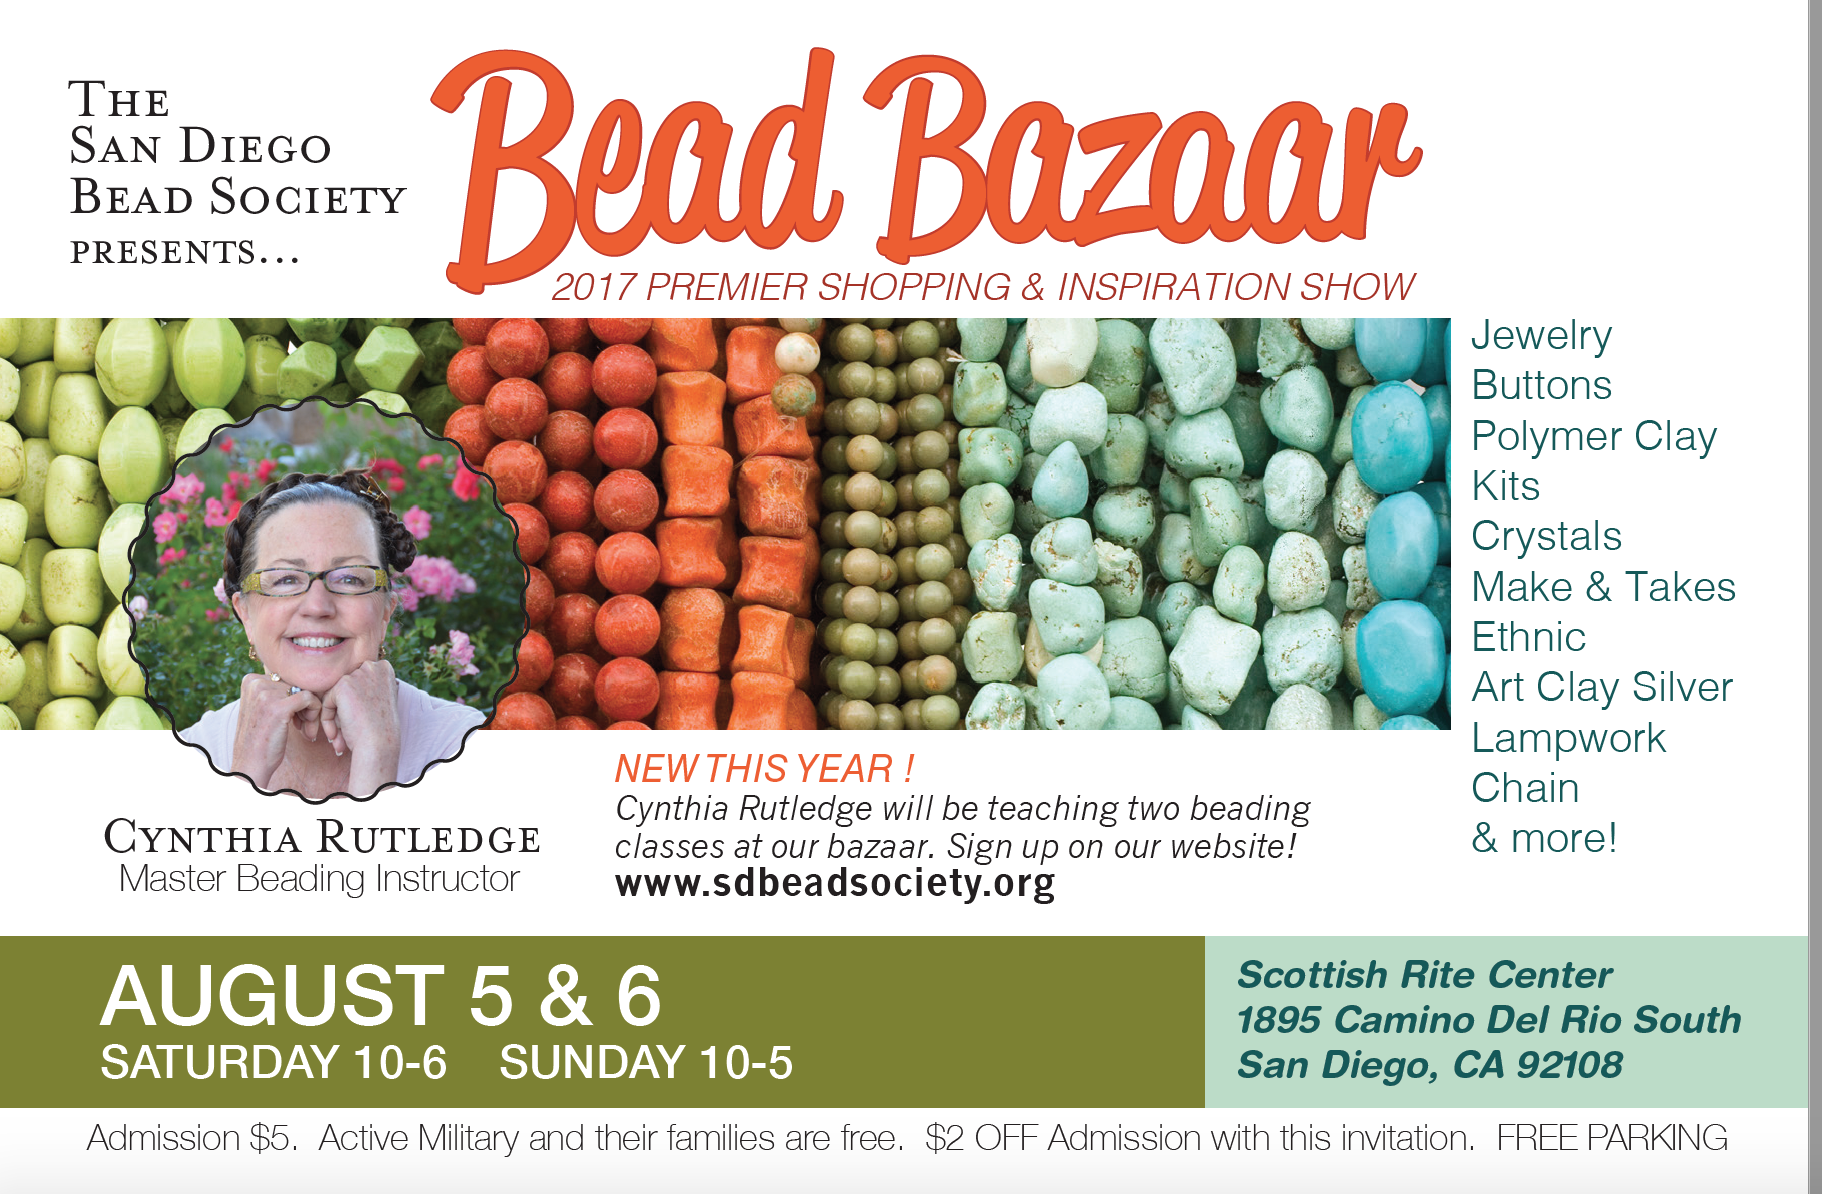 Our 18th annual Bead Bazaar is on August 5 and 6!